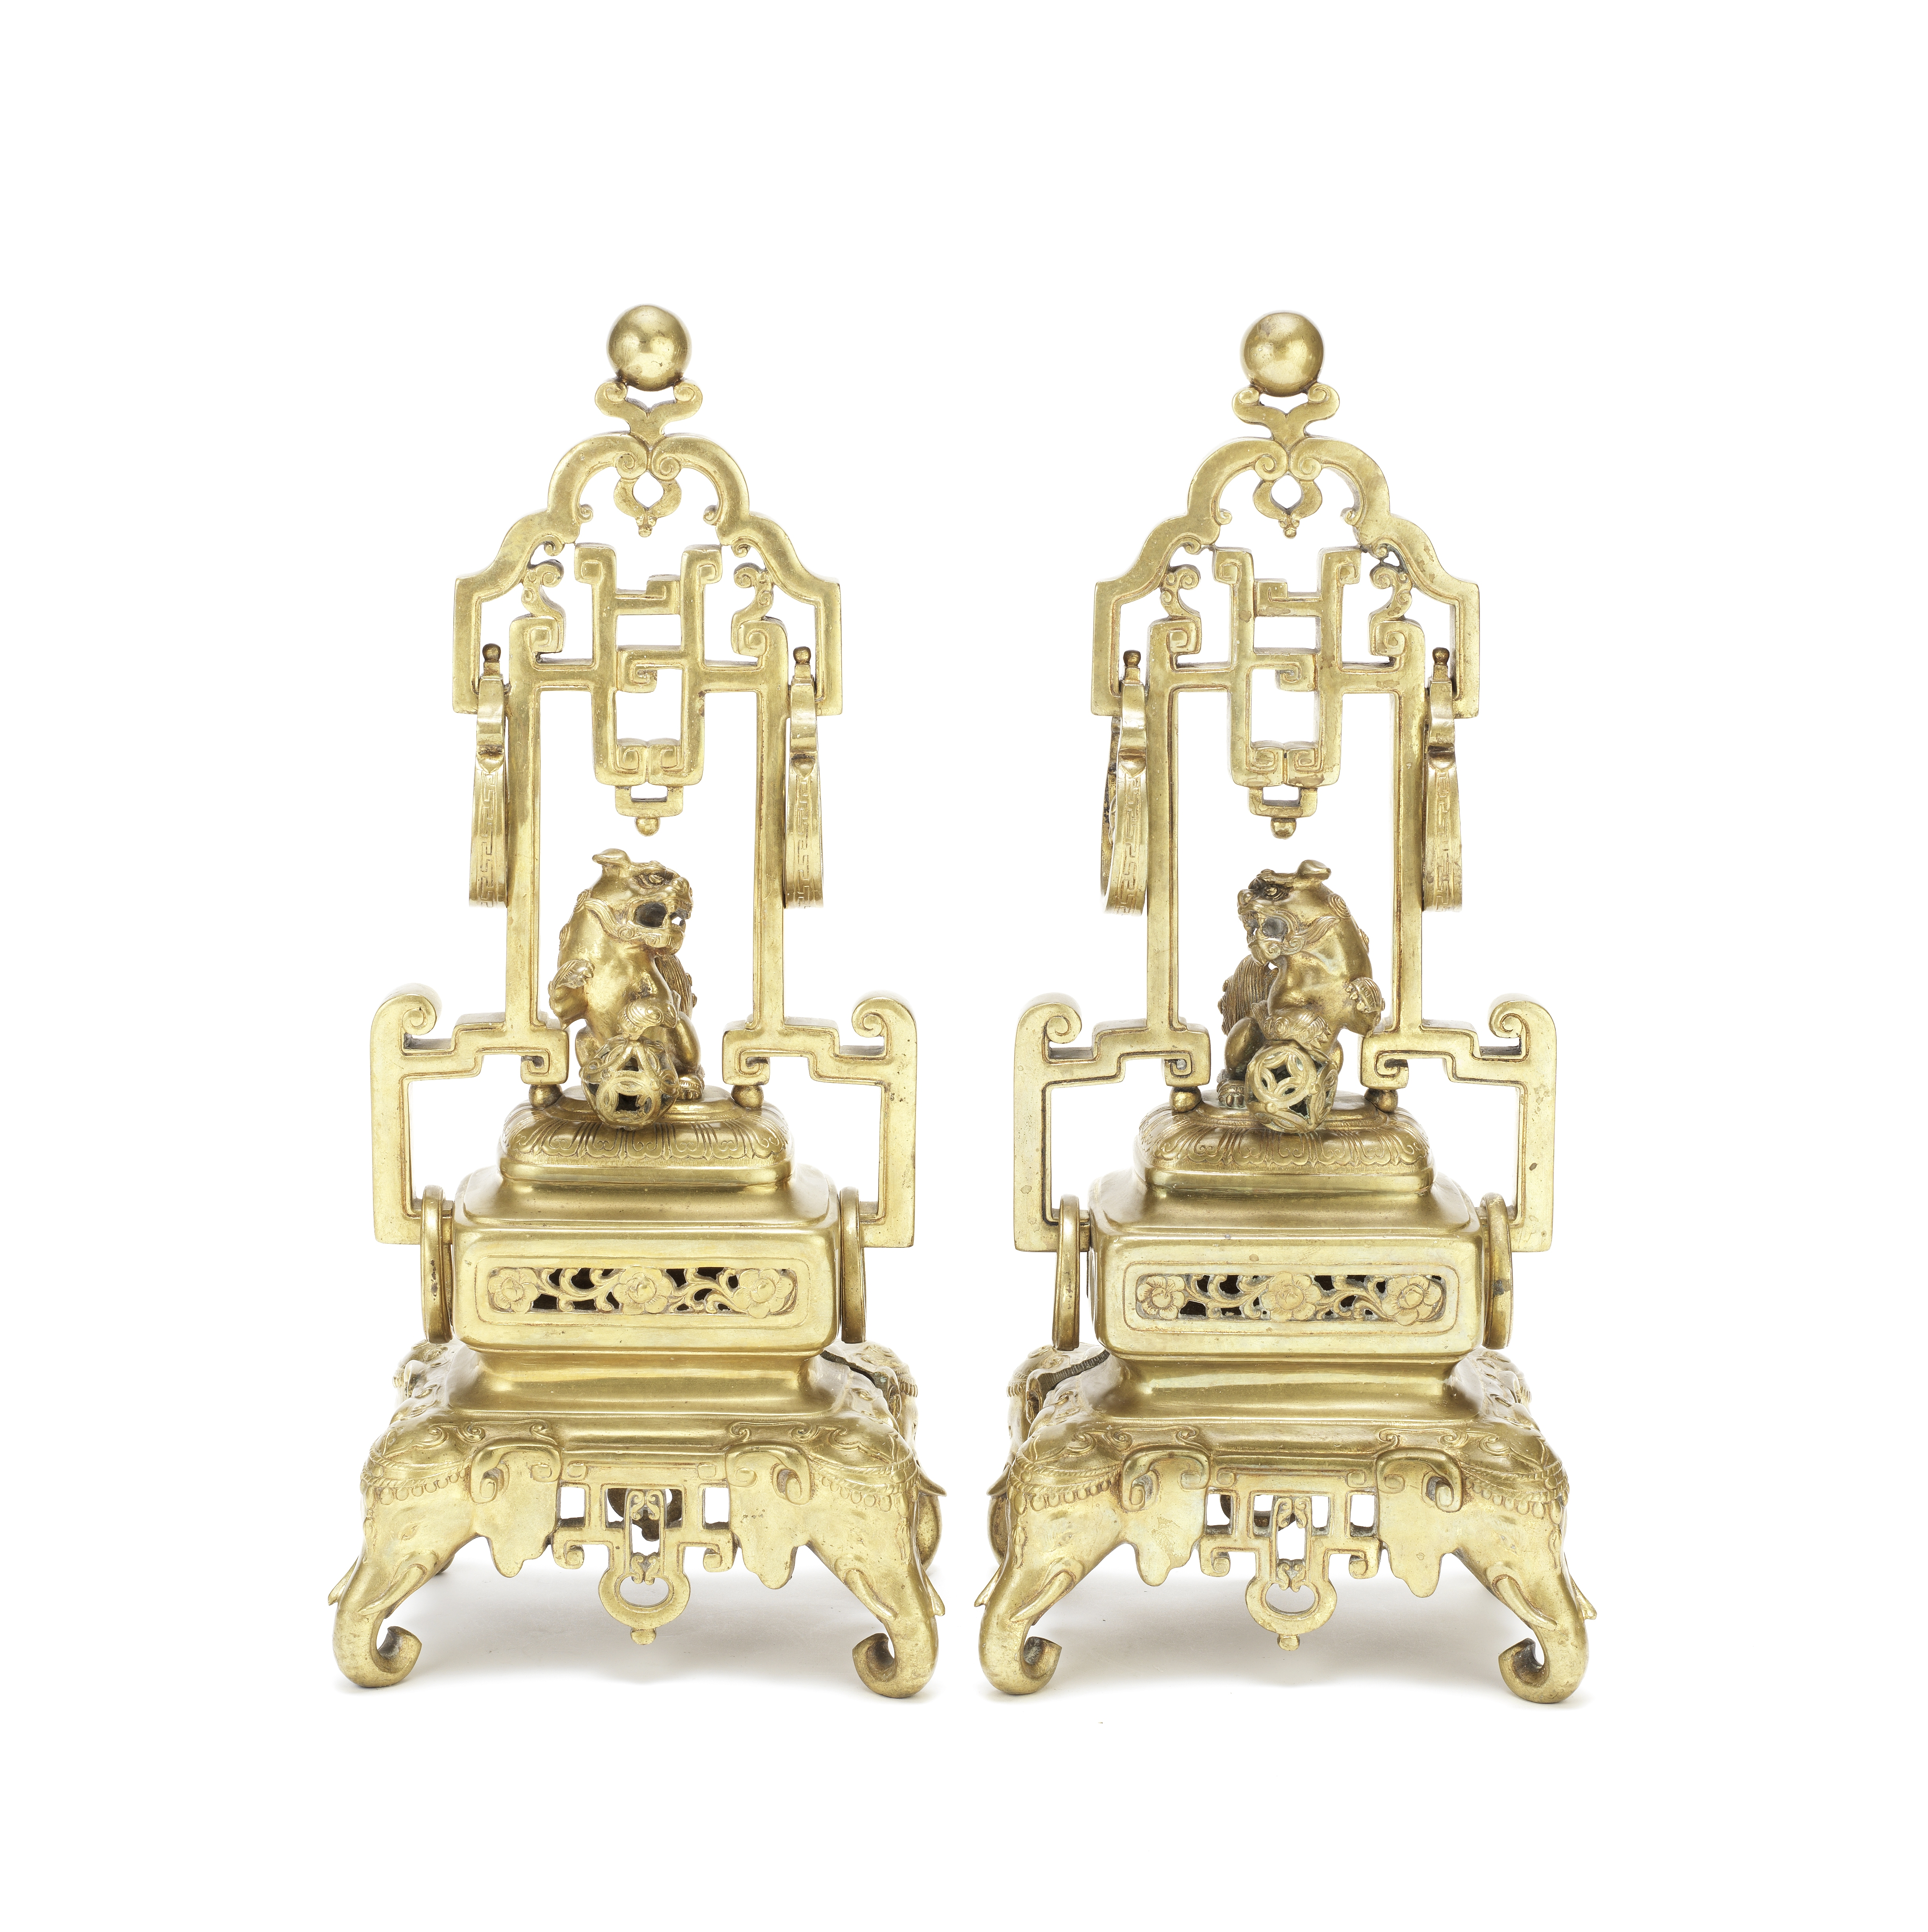 A PAIR OF CHINESE-STYLE BRASS STANDS (2)